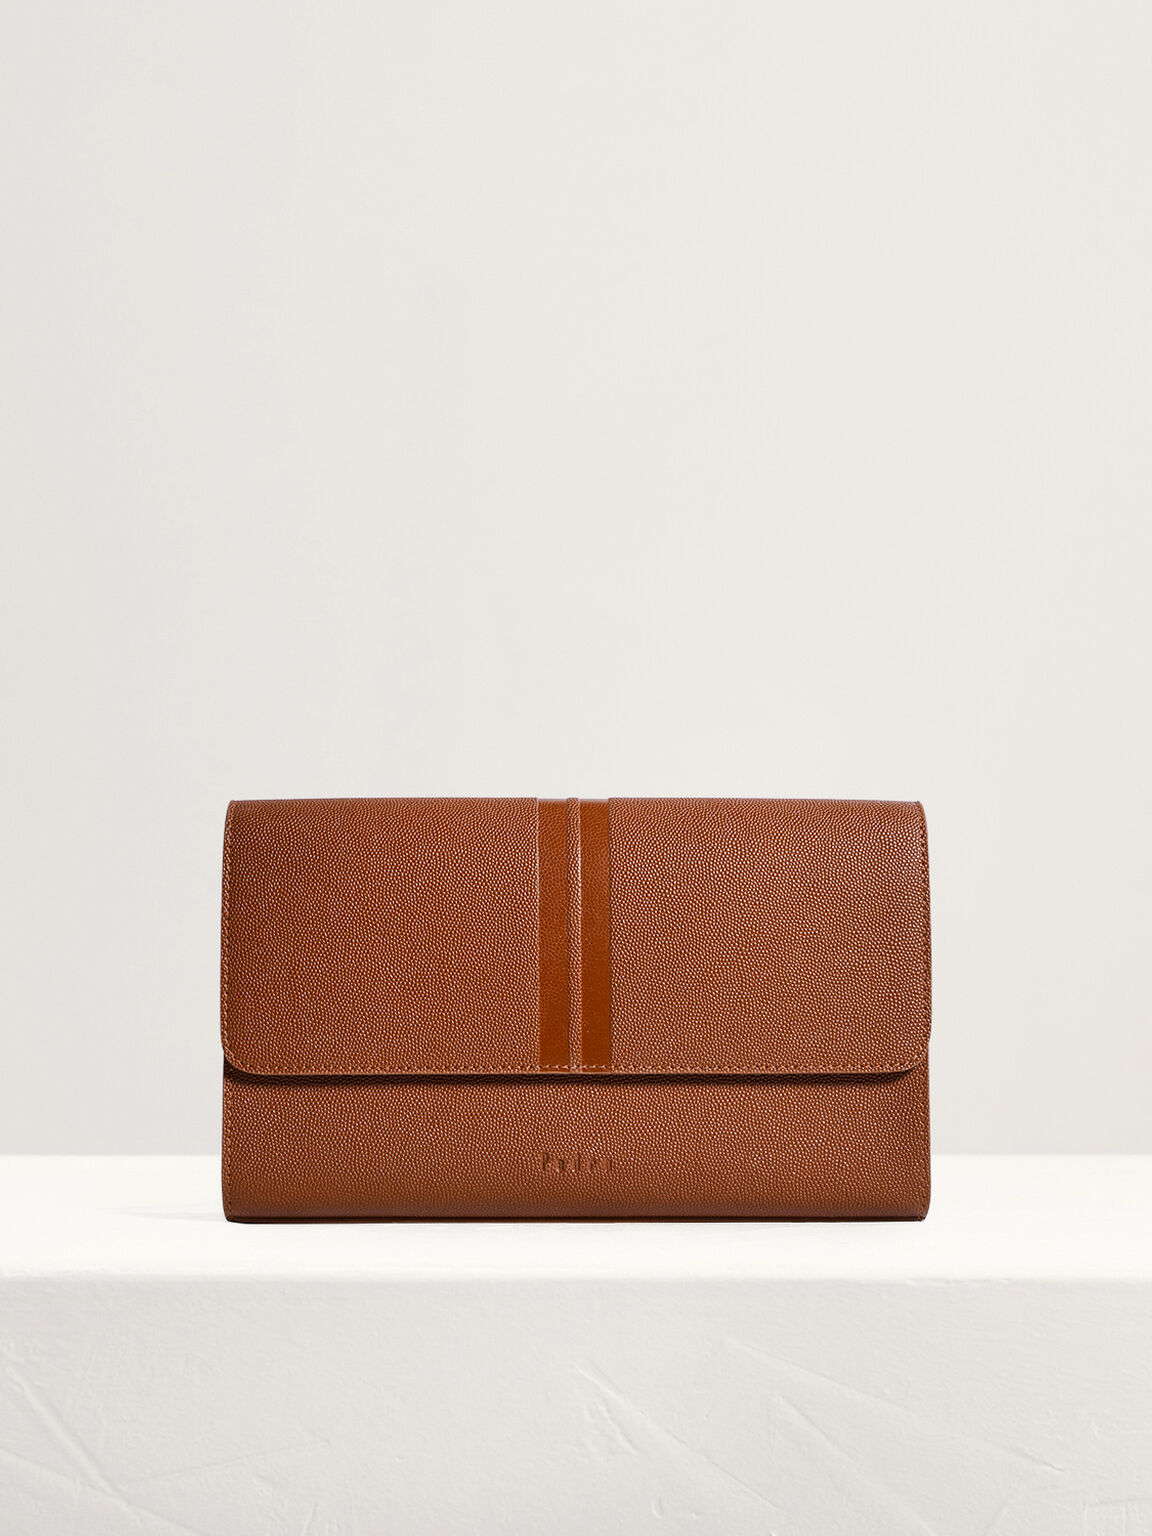 Striped Leather Clutch, Cognac, hi-res